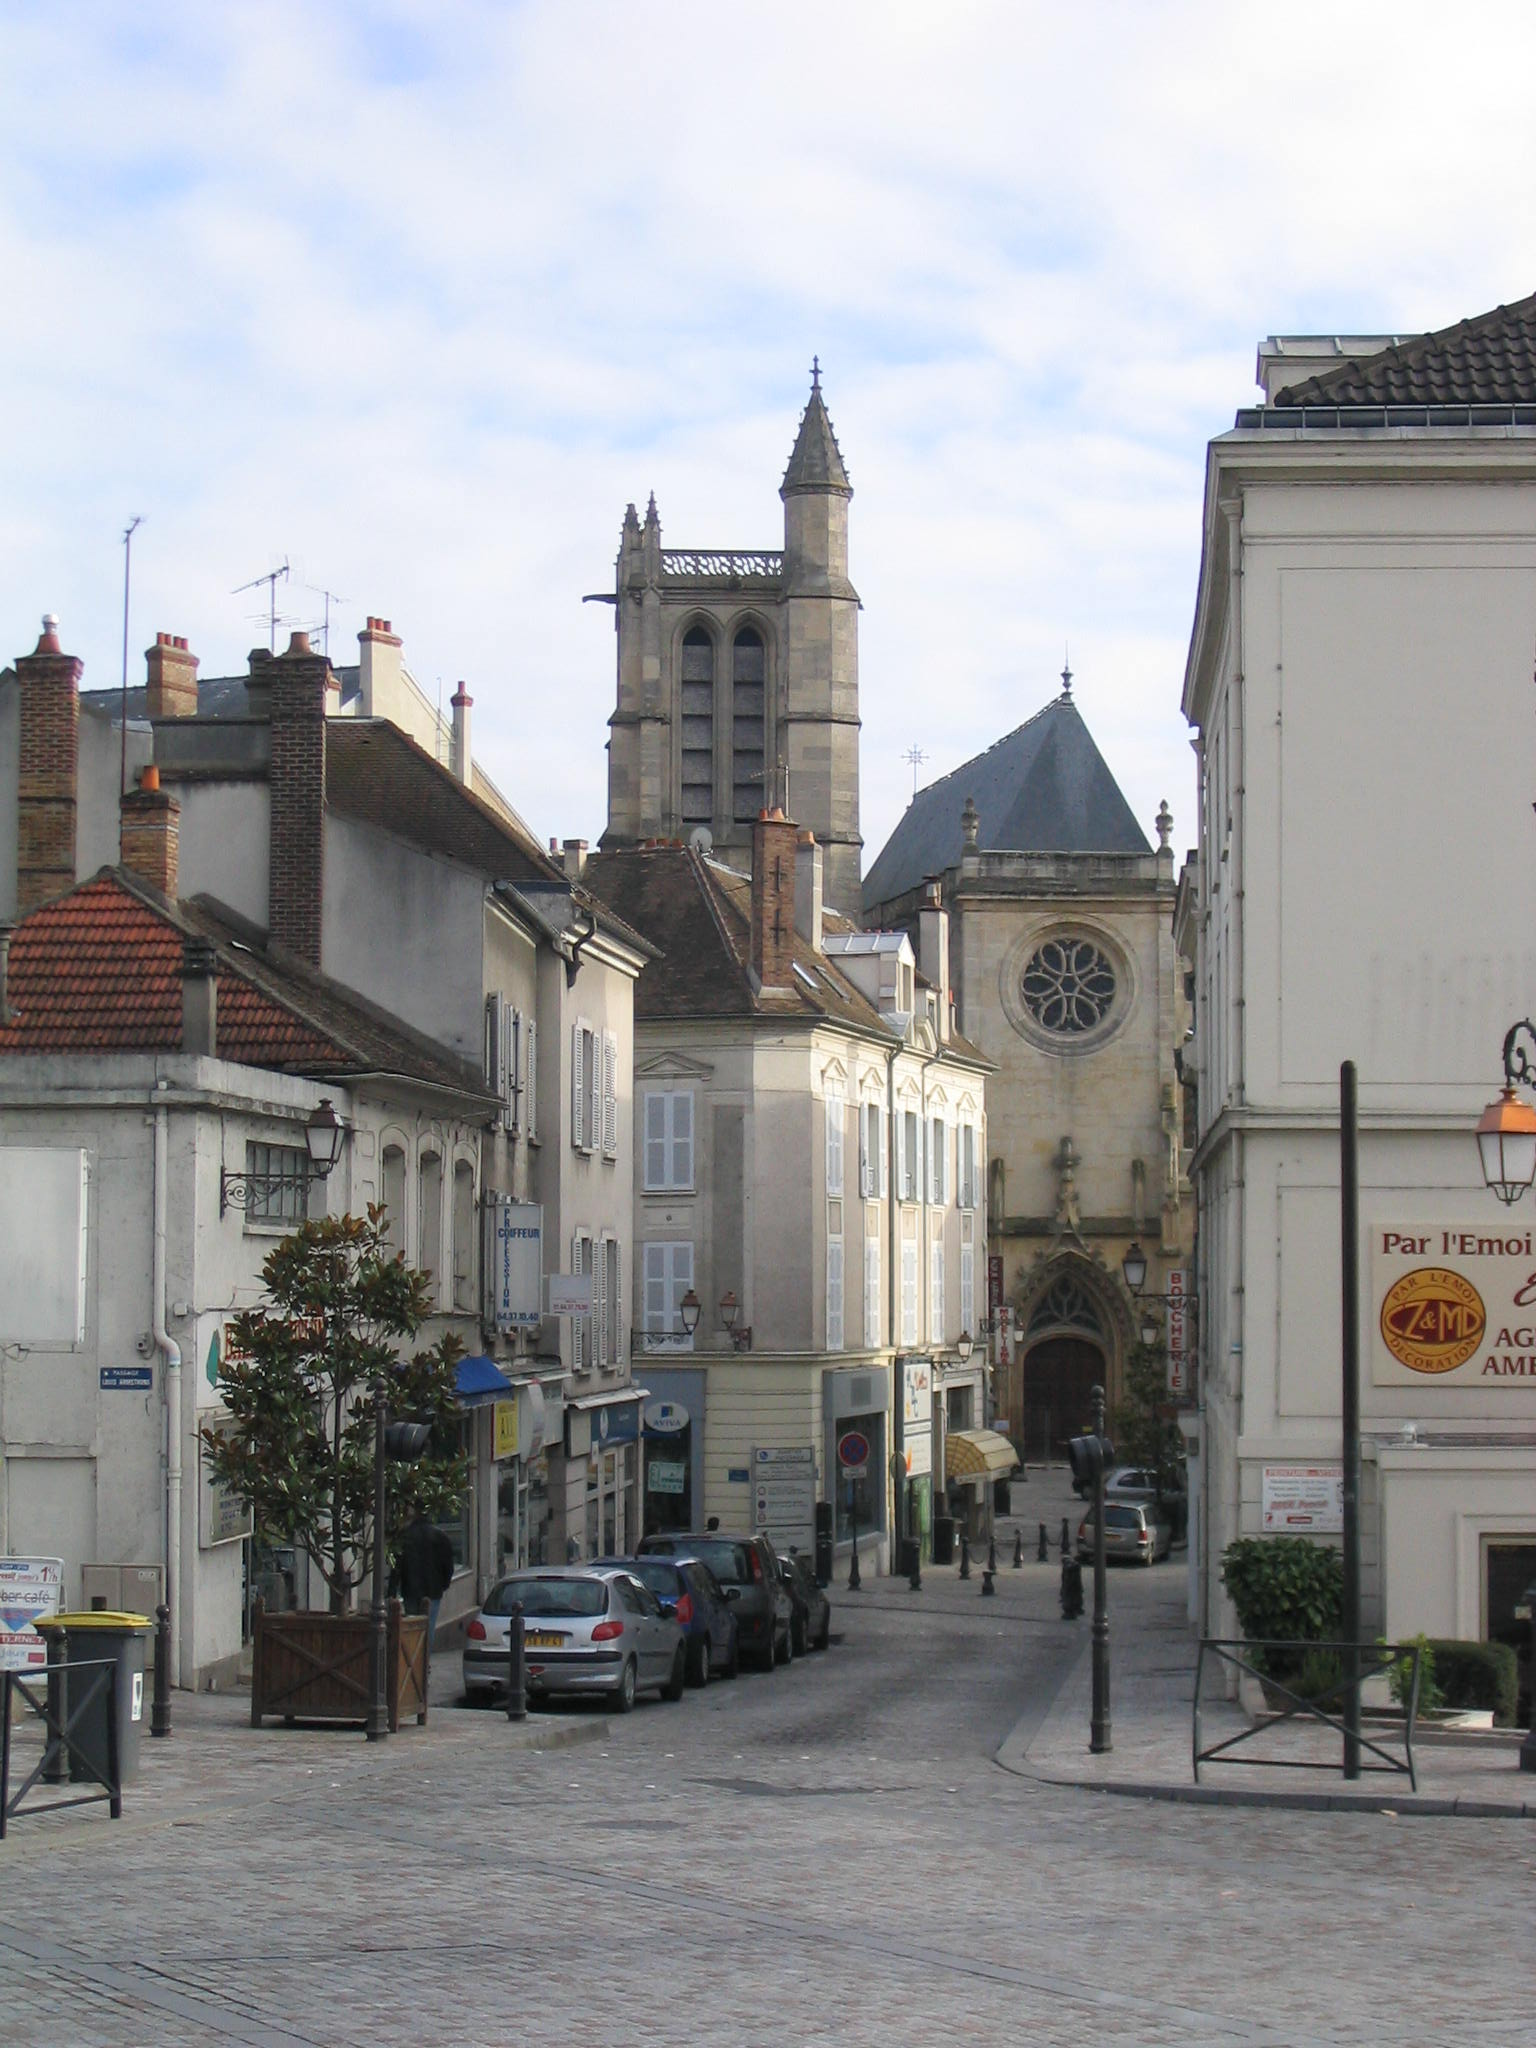 Depiction of Melun